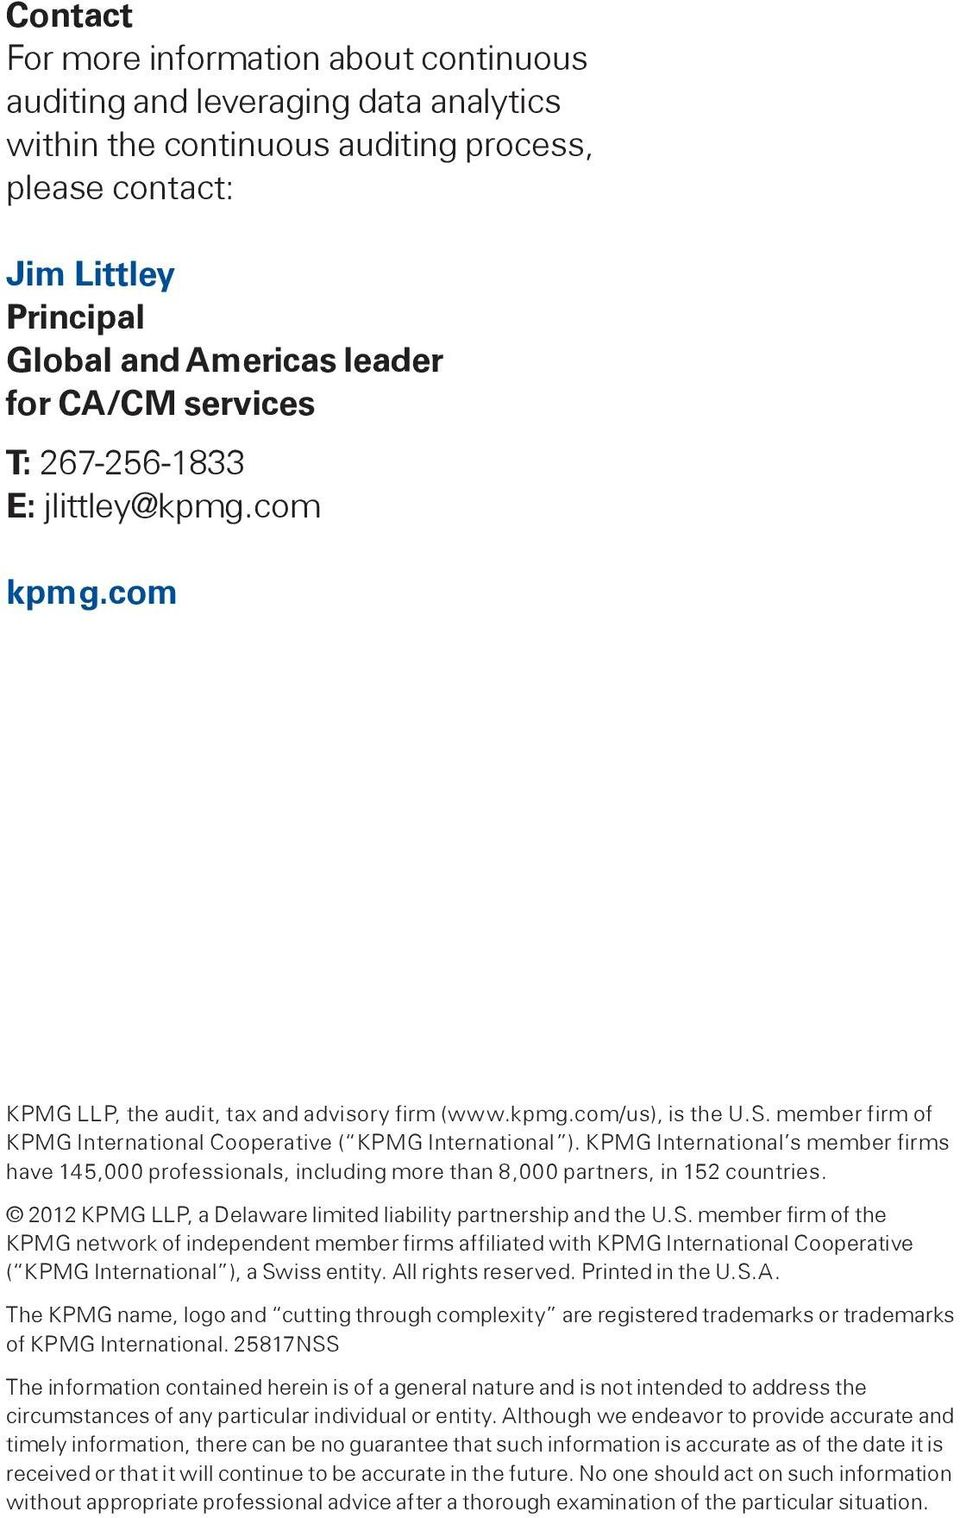 KPMG International s member firms have 145,000 professionals, including more than 8,000 partners, in 152 countries. 2012 KPMG LLP, a Delaware limited liability partnership and the U.S.